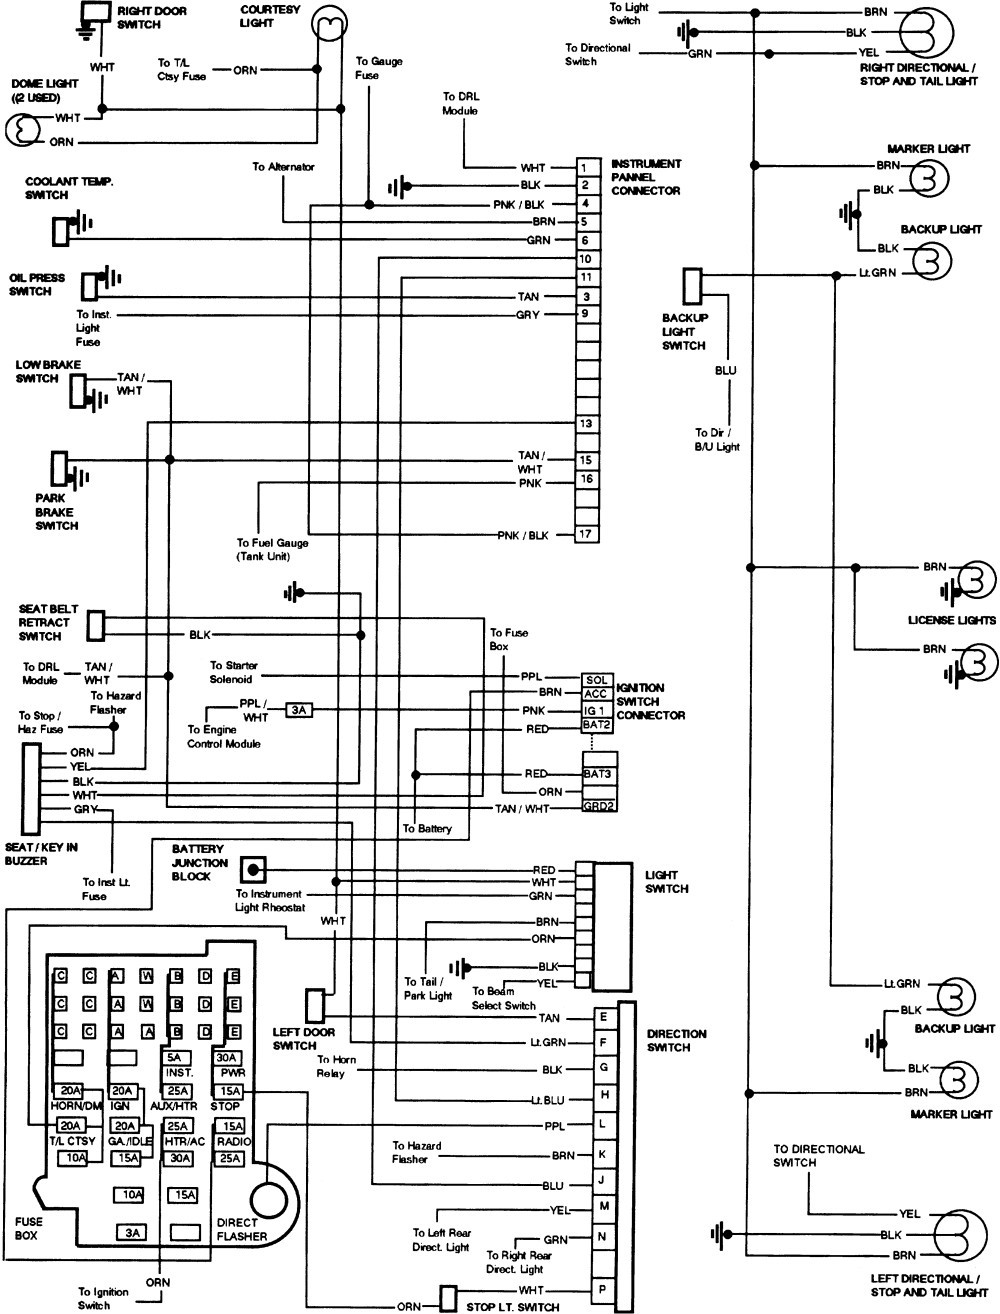 NB_7671] 1984 Toyota Pickup Wiring Diagram Download DiagramAspi Anist Ricis Lious Elec Mohammedshrine Librar Wiring 101